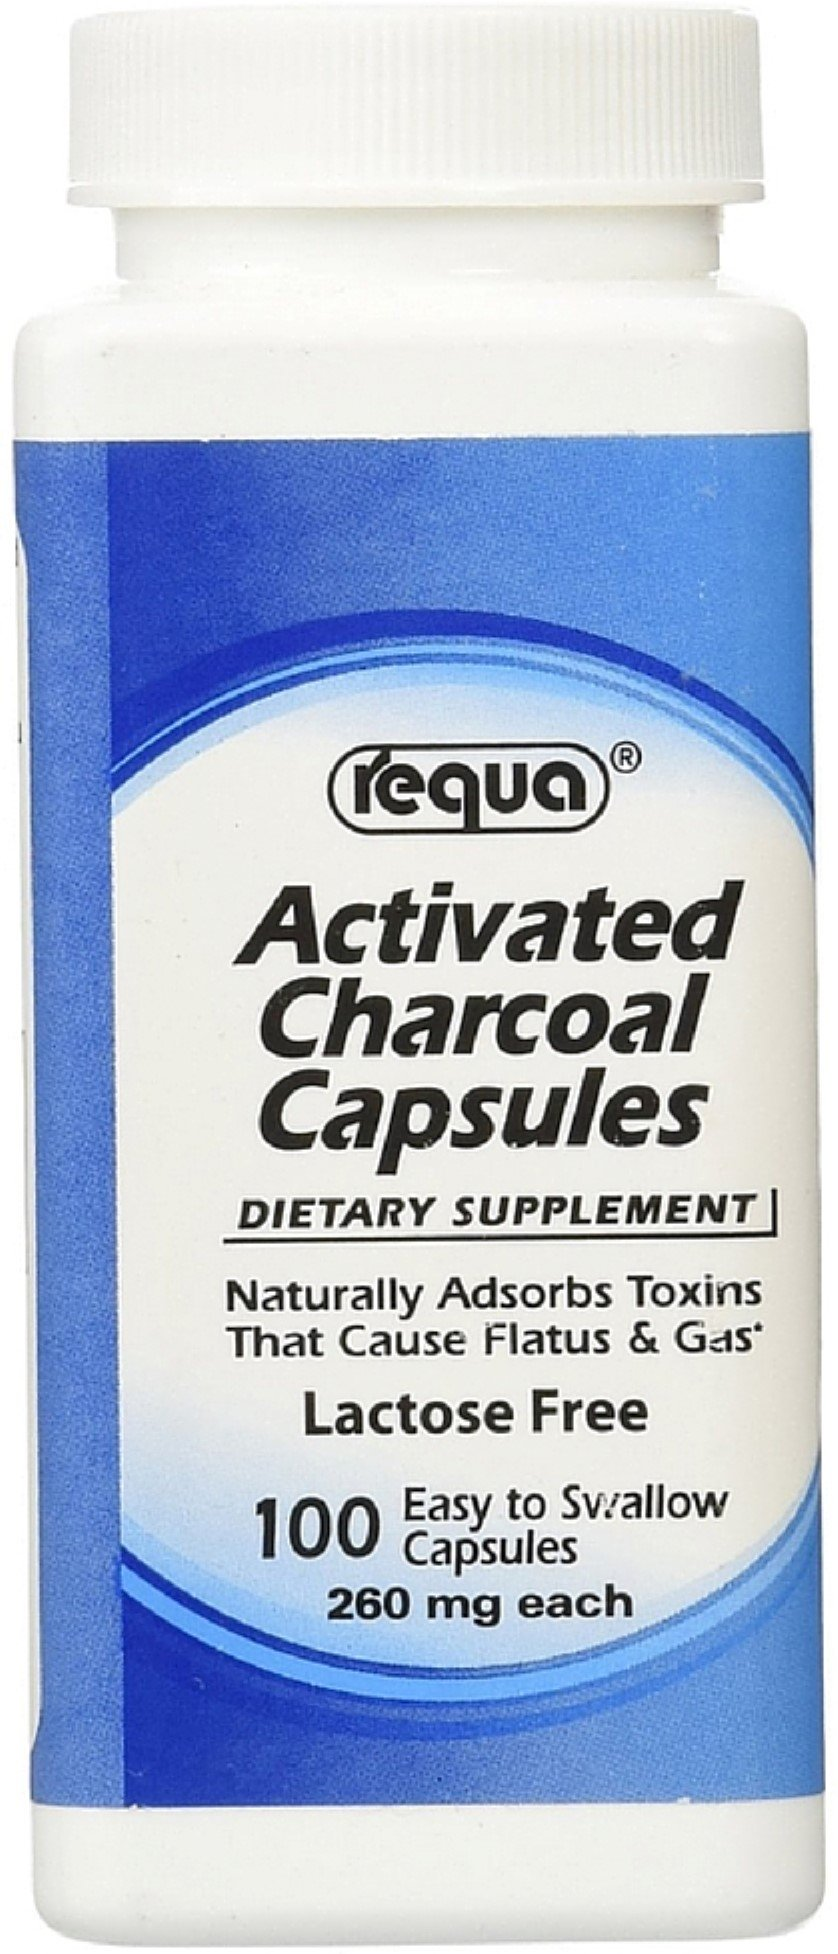 Requa Activated Charcoal Capsules 100 ea (Pack of 7)